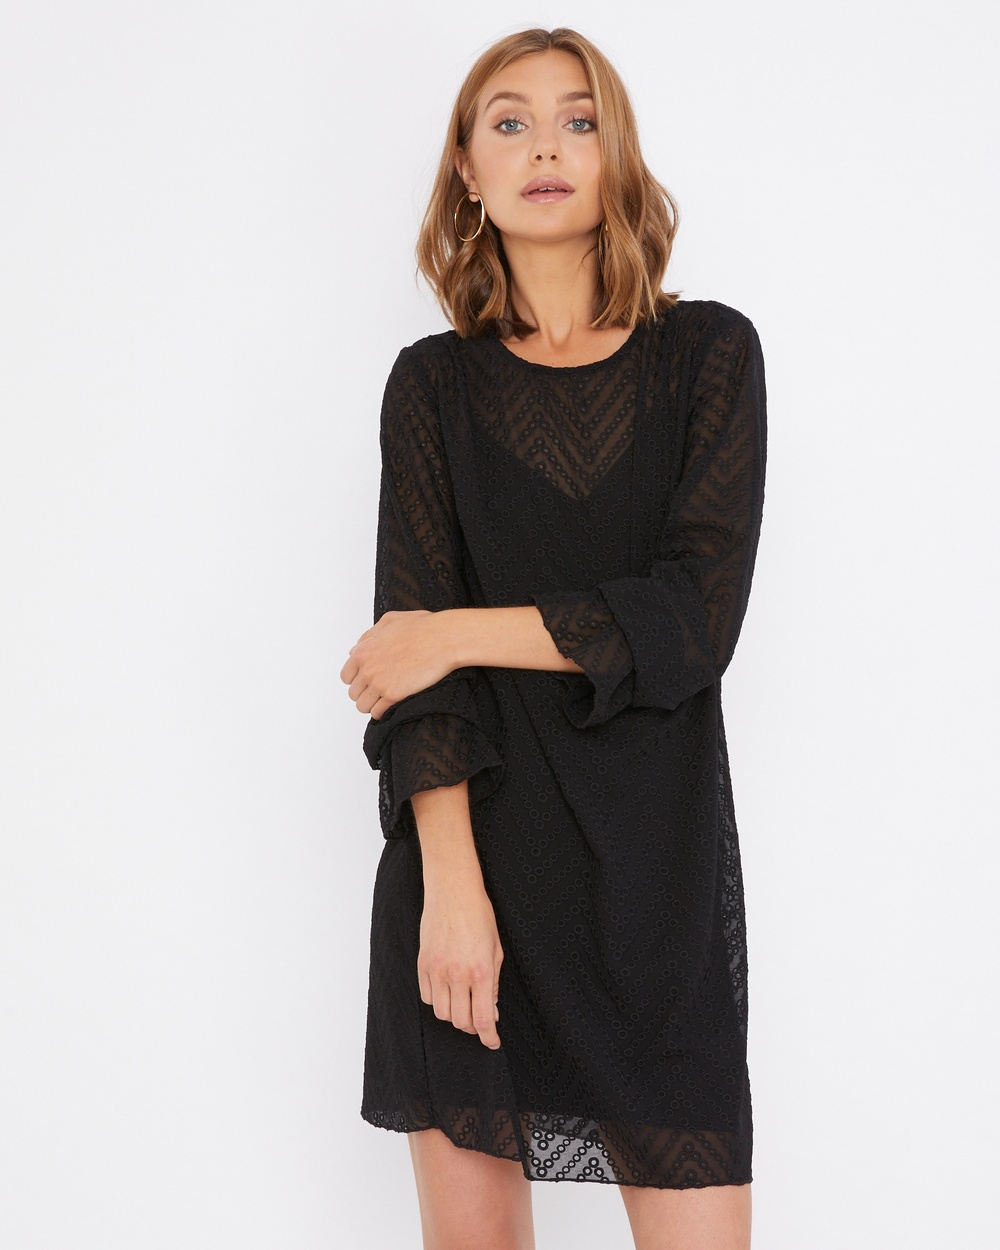 Calli Averie Embroidery Dress Dresses Black Averie Embroidery Dress